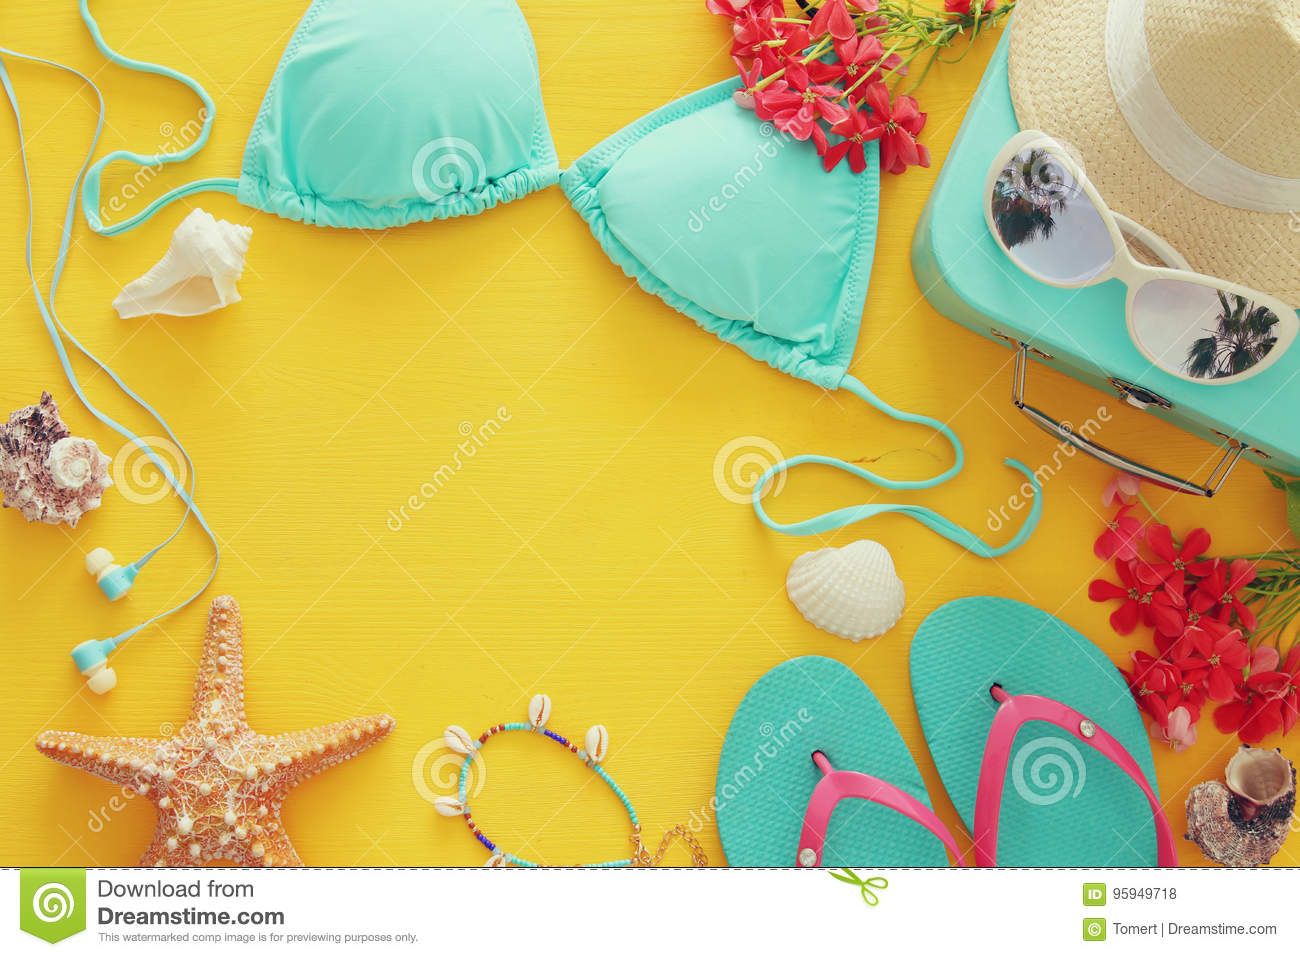 83ef7284b9 fashion female swimsuit bikini on yellow wooden background. Summer beach  vacation concept